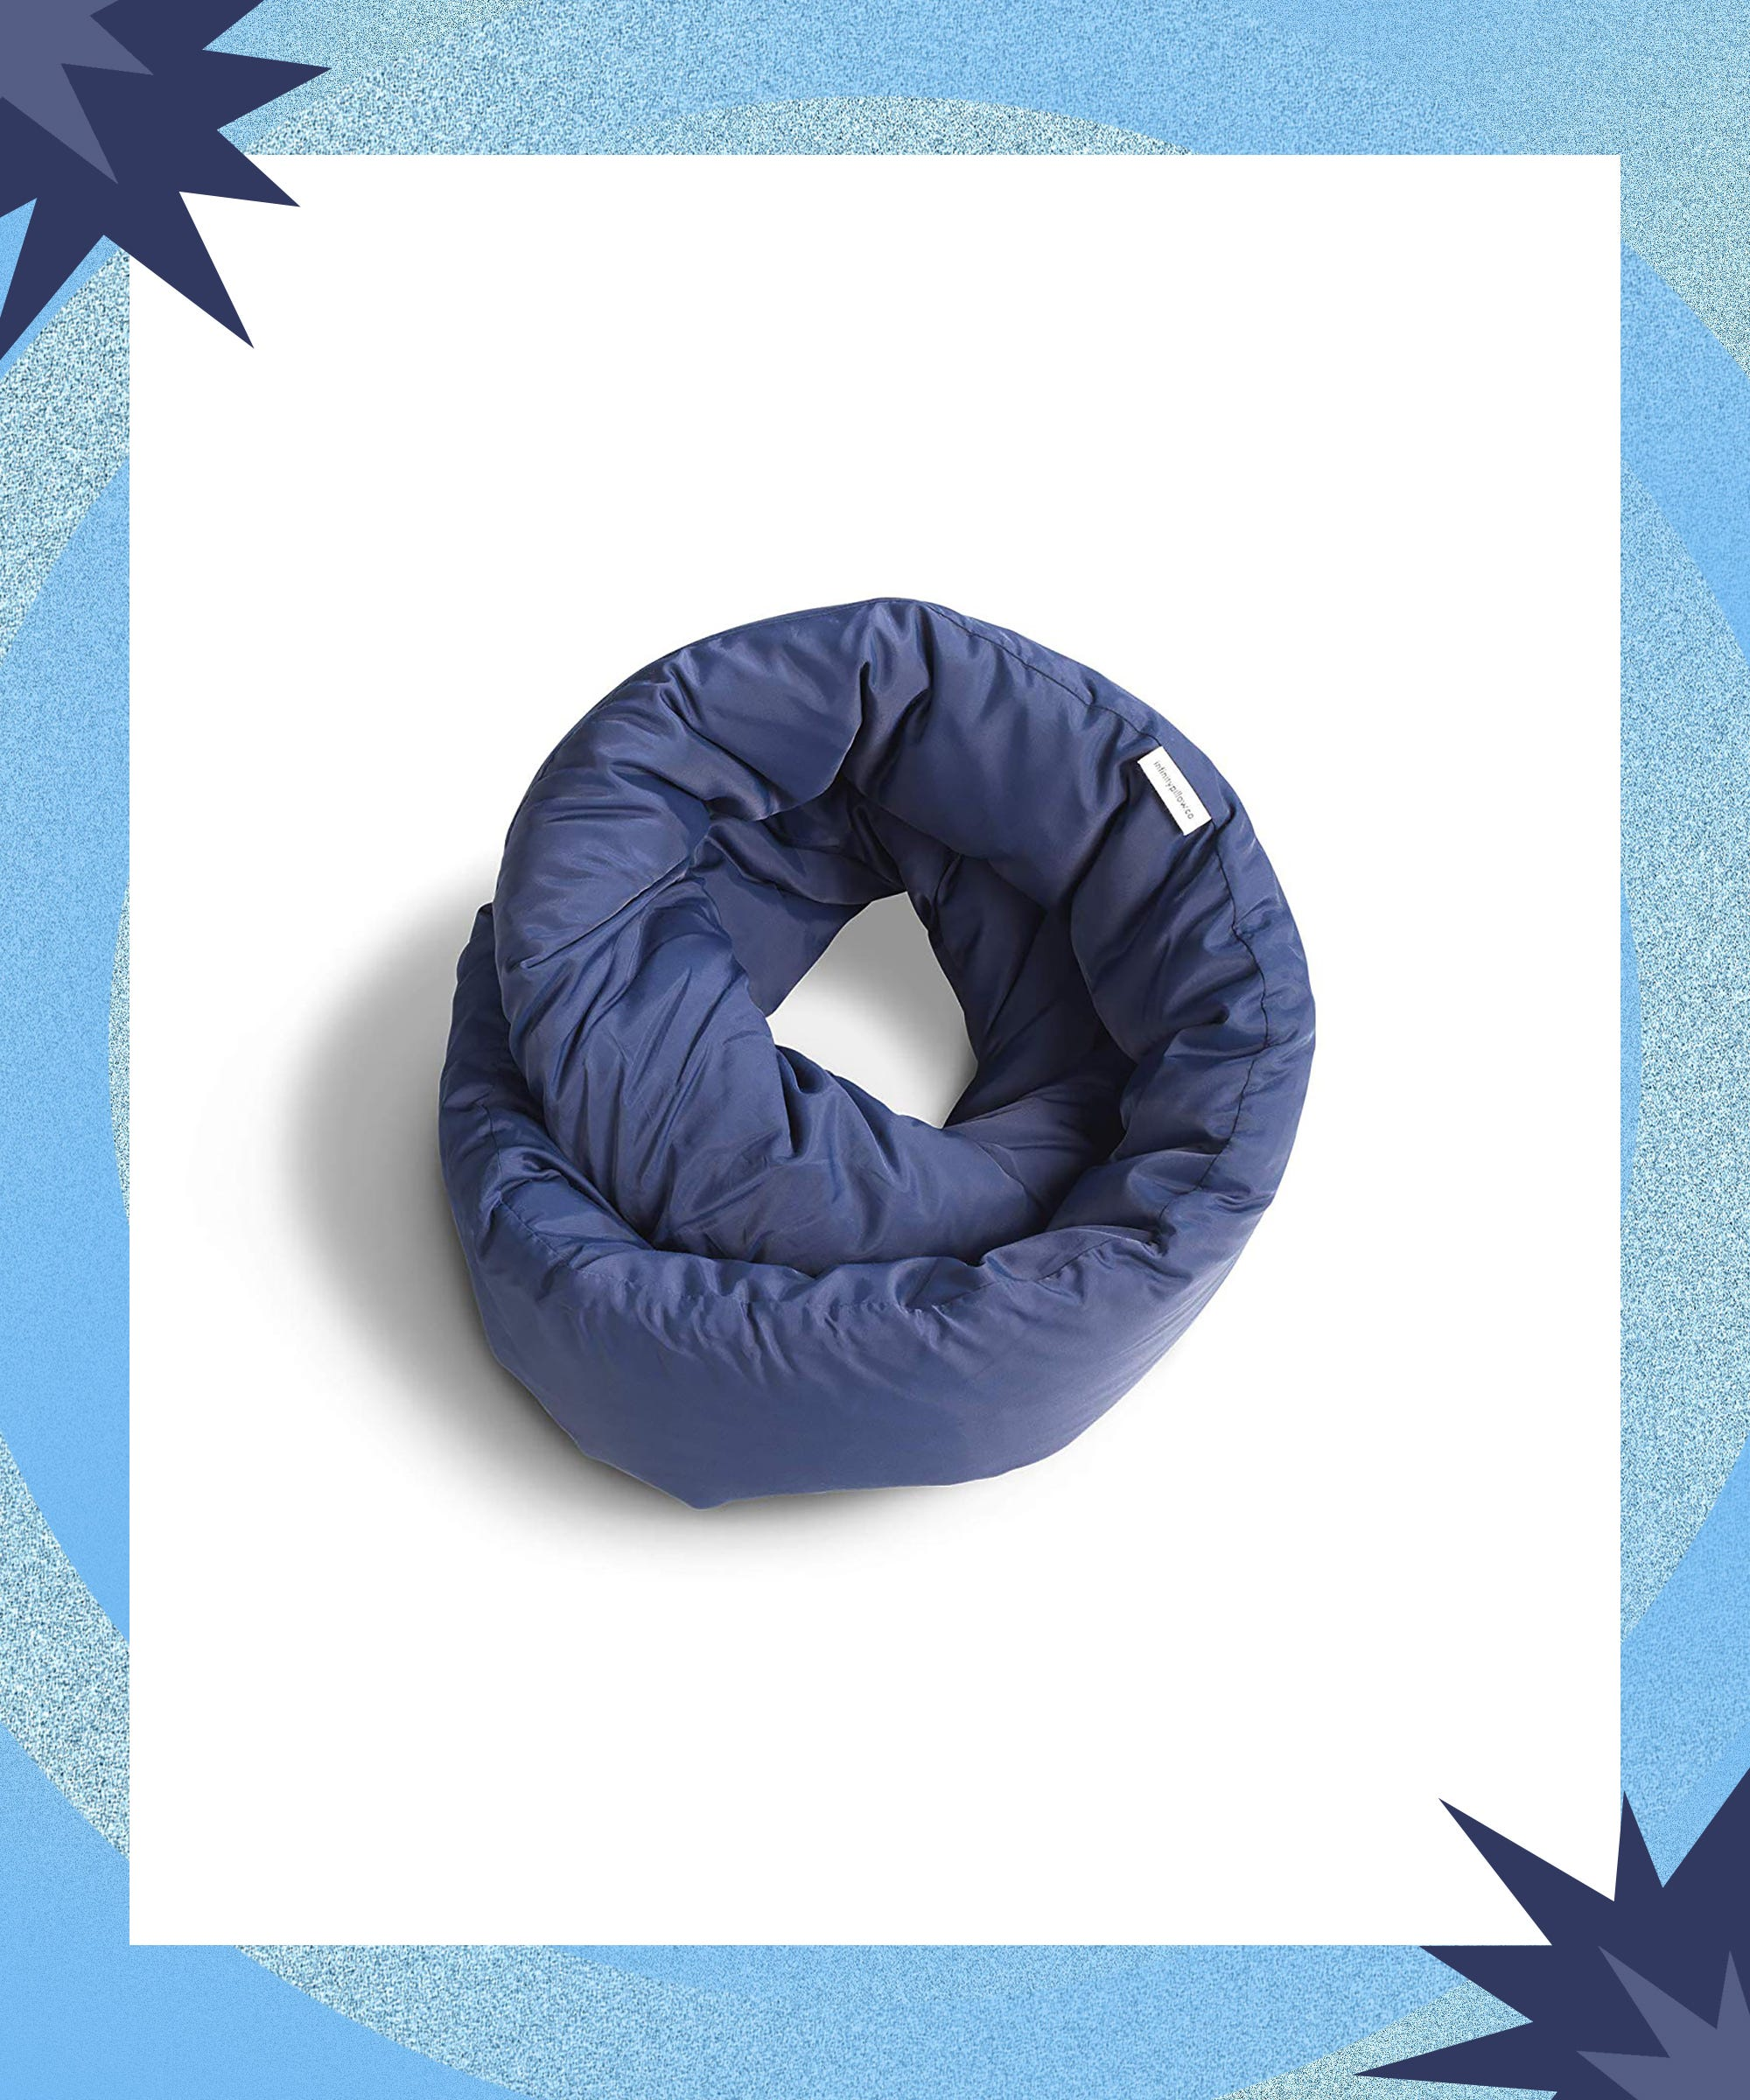 Best Travel Pillow 2020.Best Travel Neck Pillows 2019 Reviews For Best Sleep